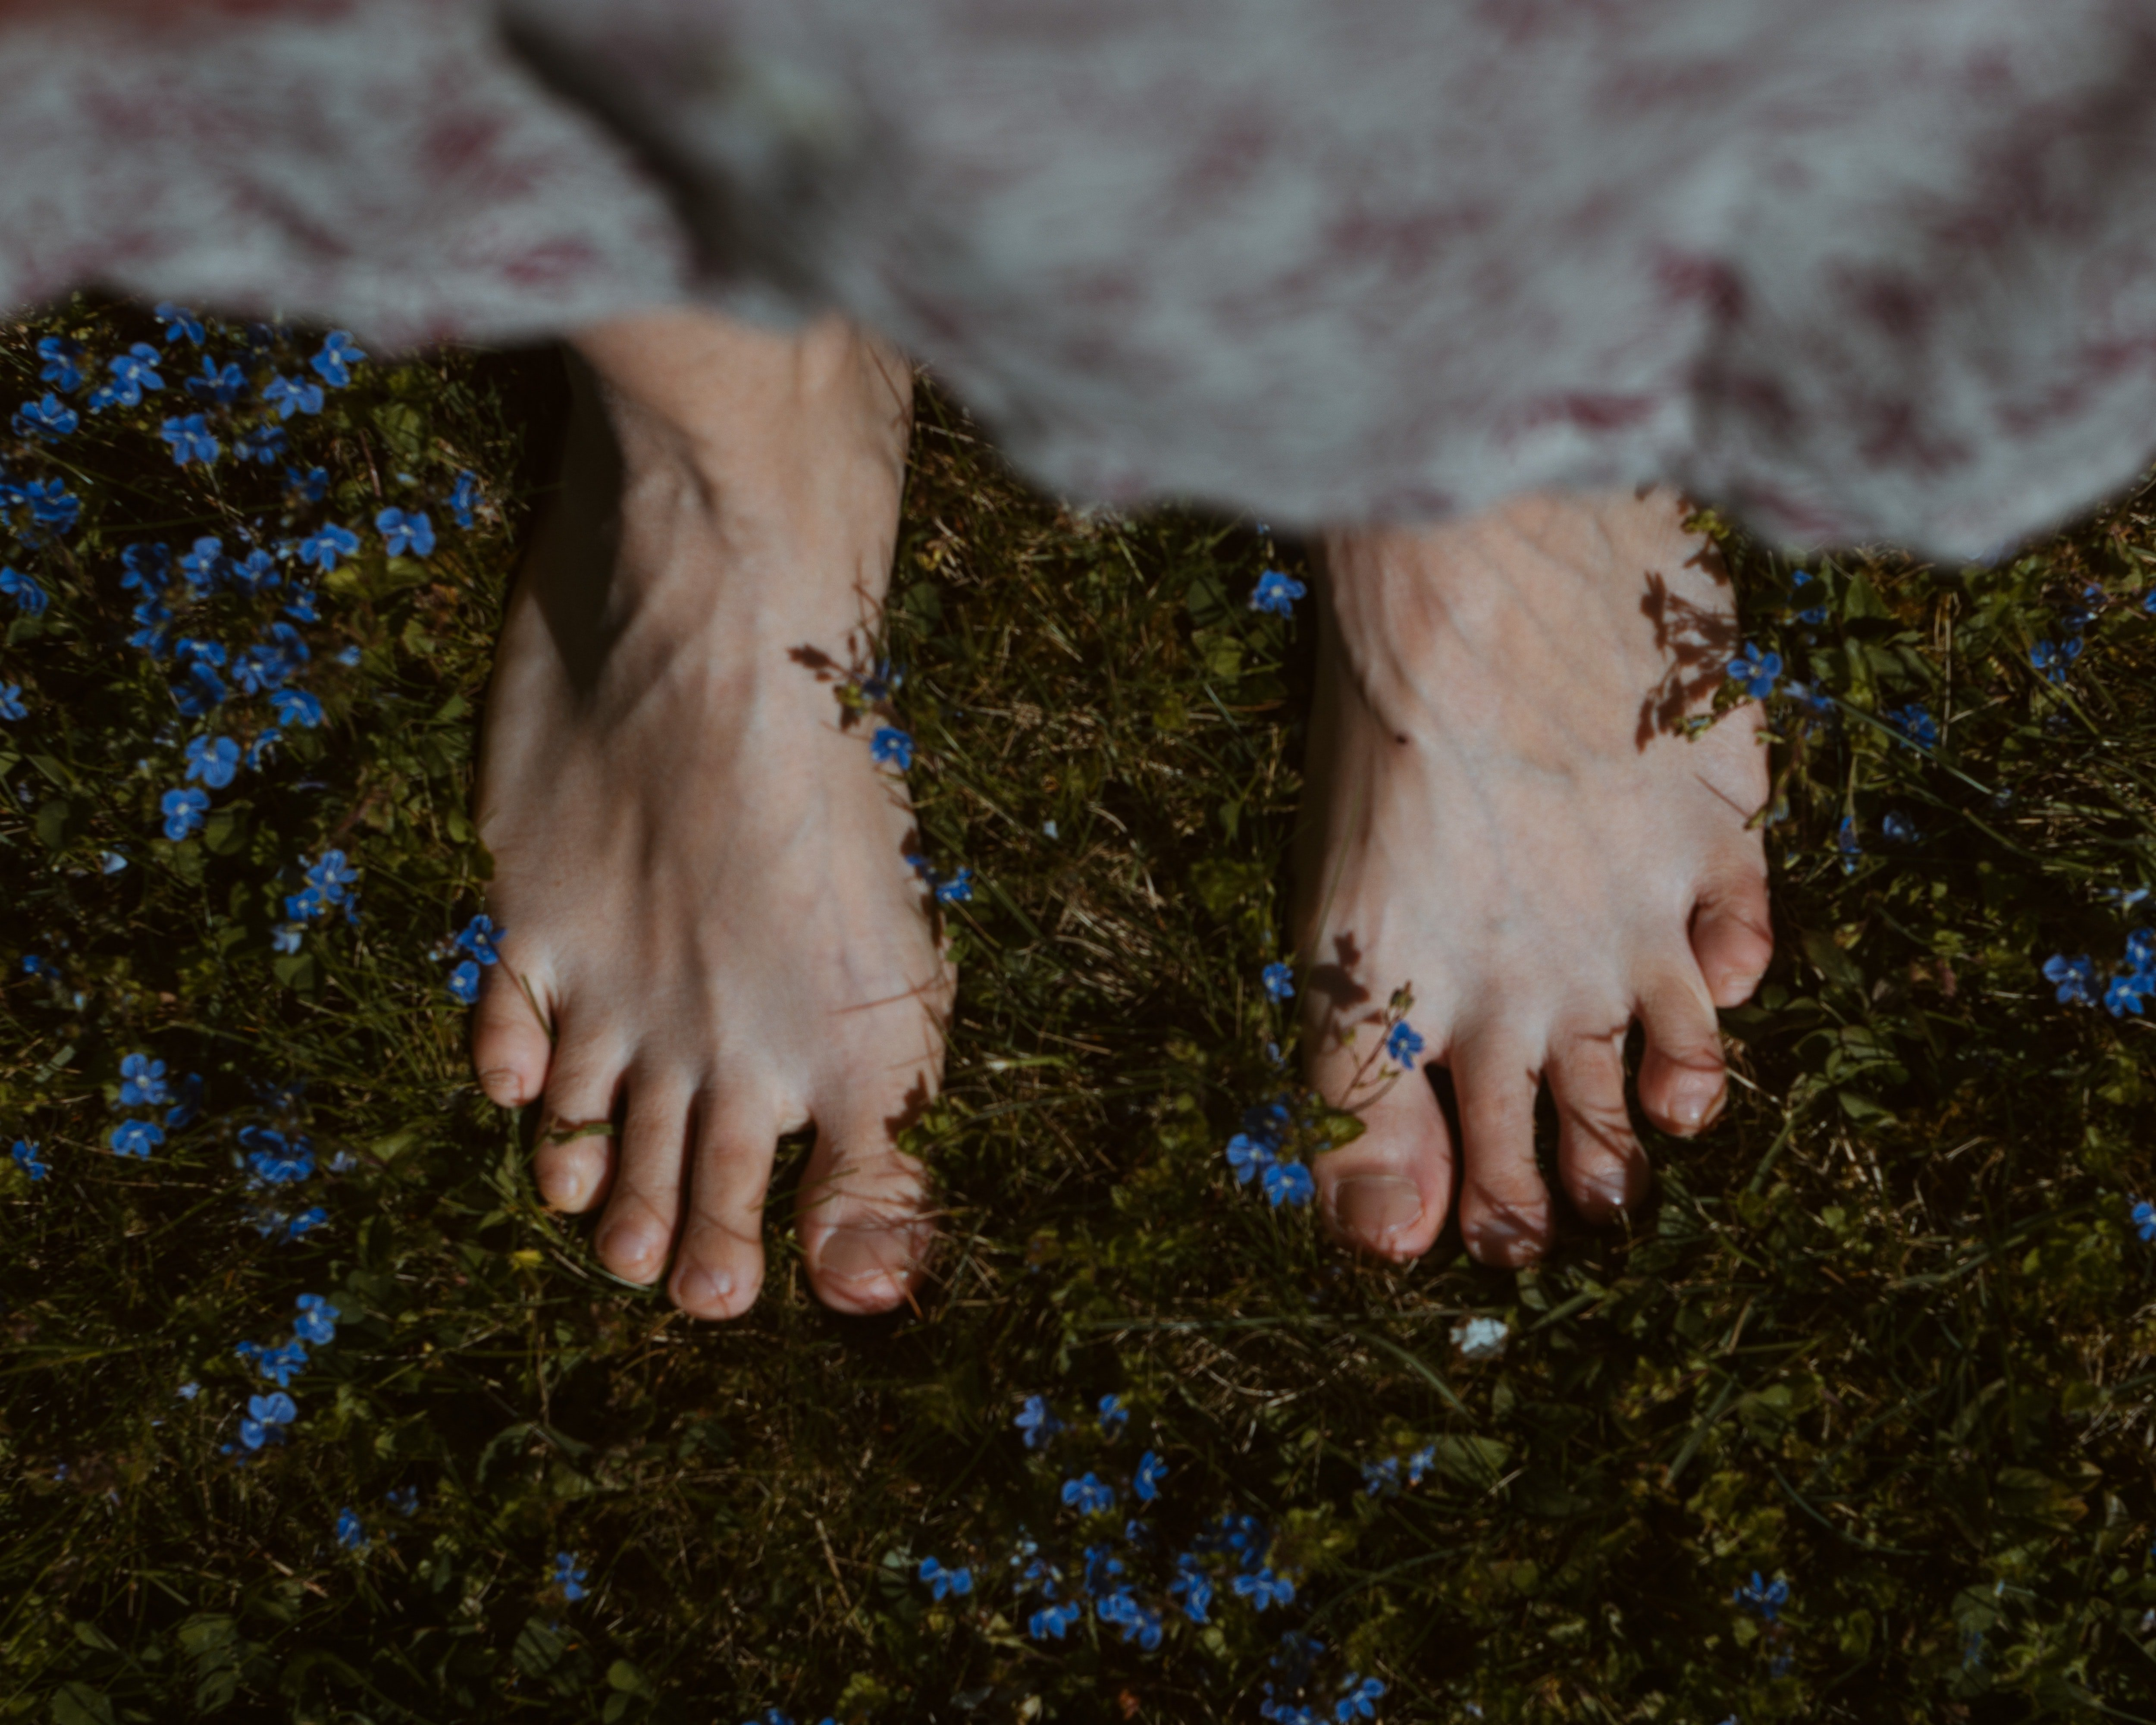 Embodied Encounter: Bare Feet at the Burning Bush